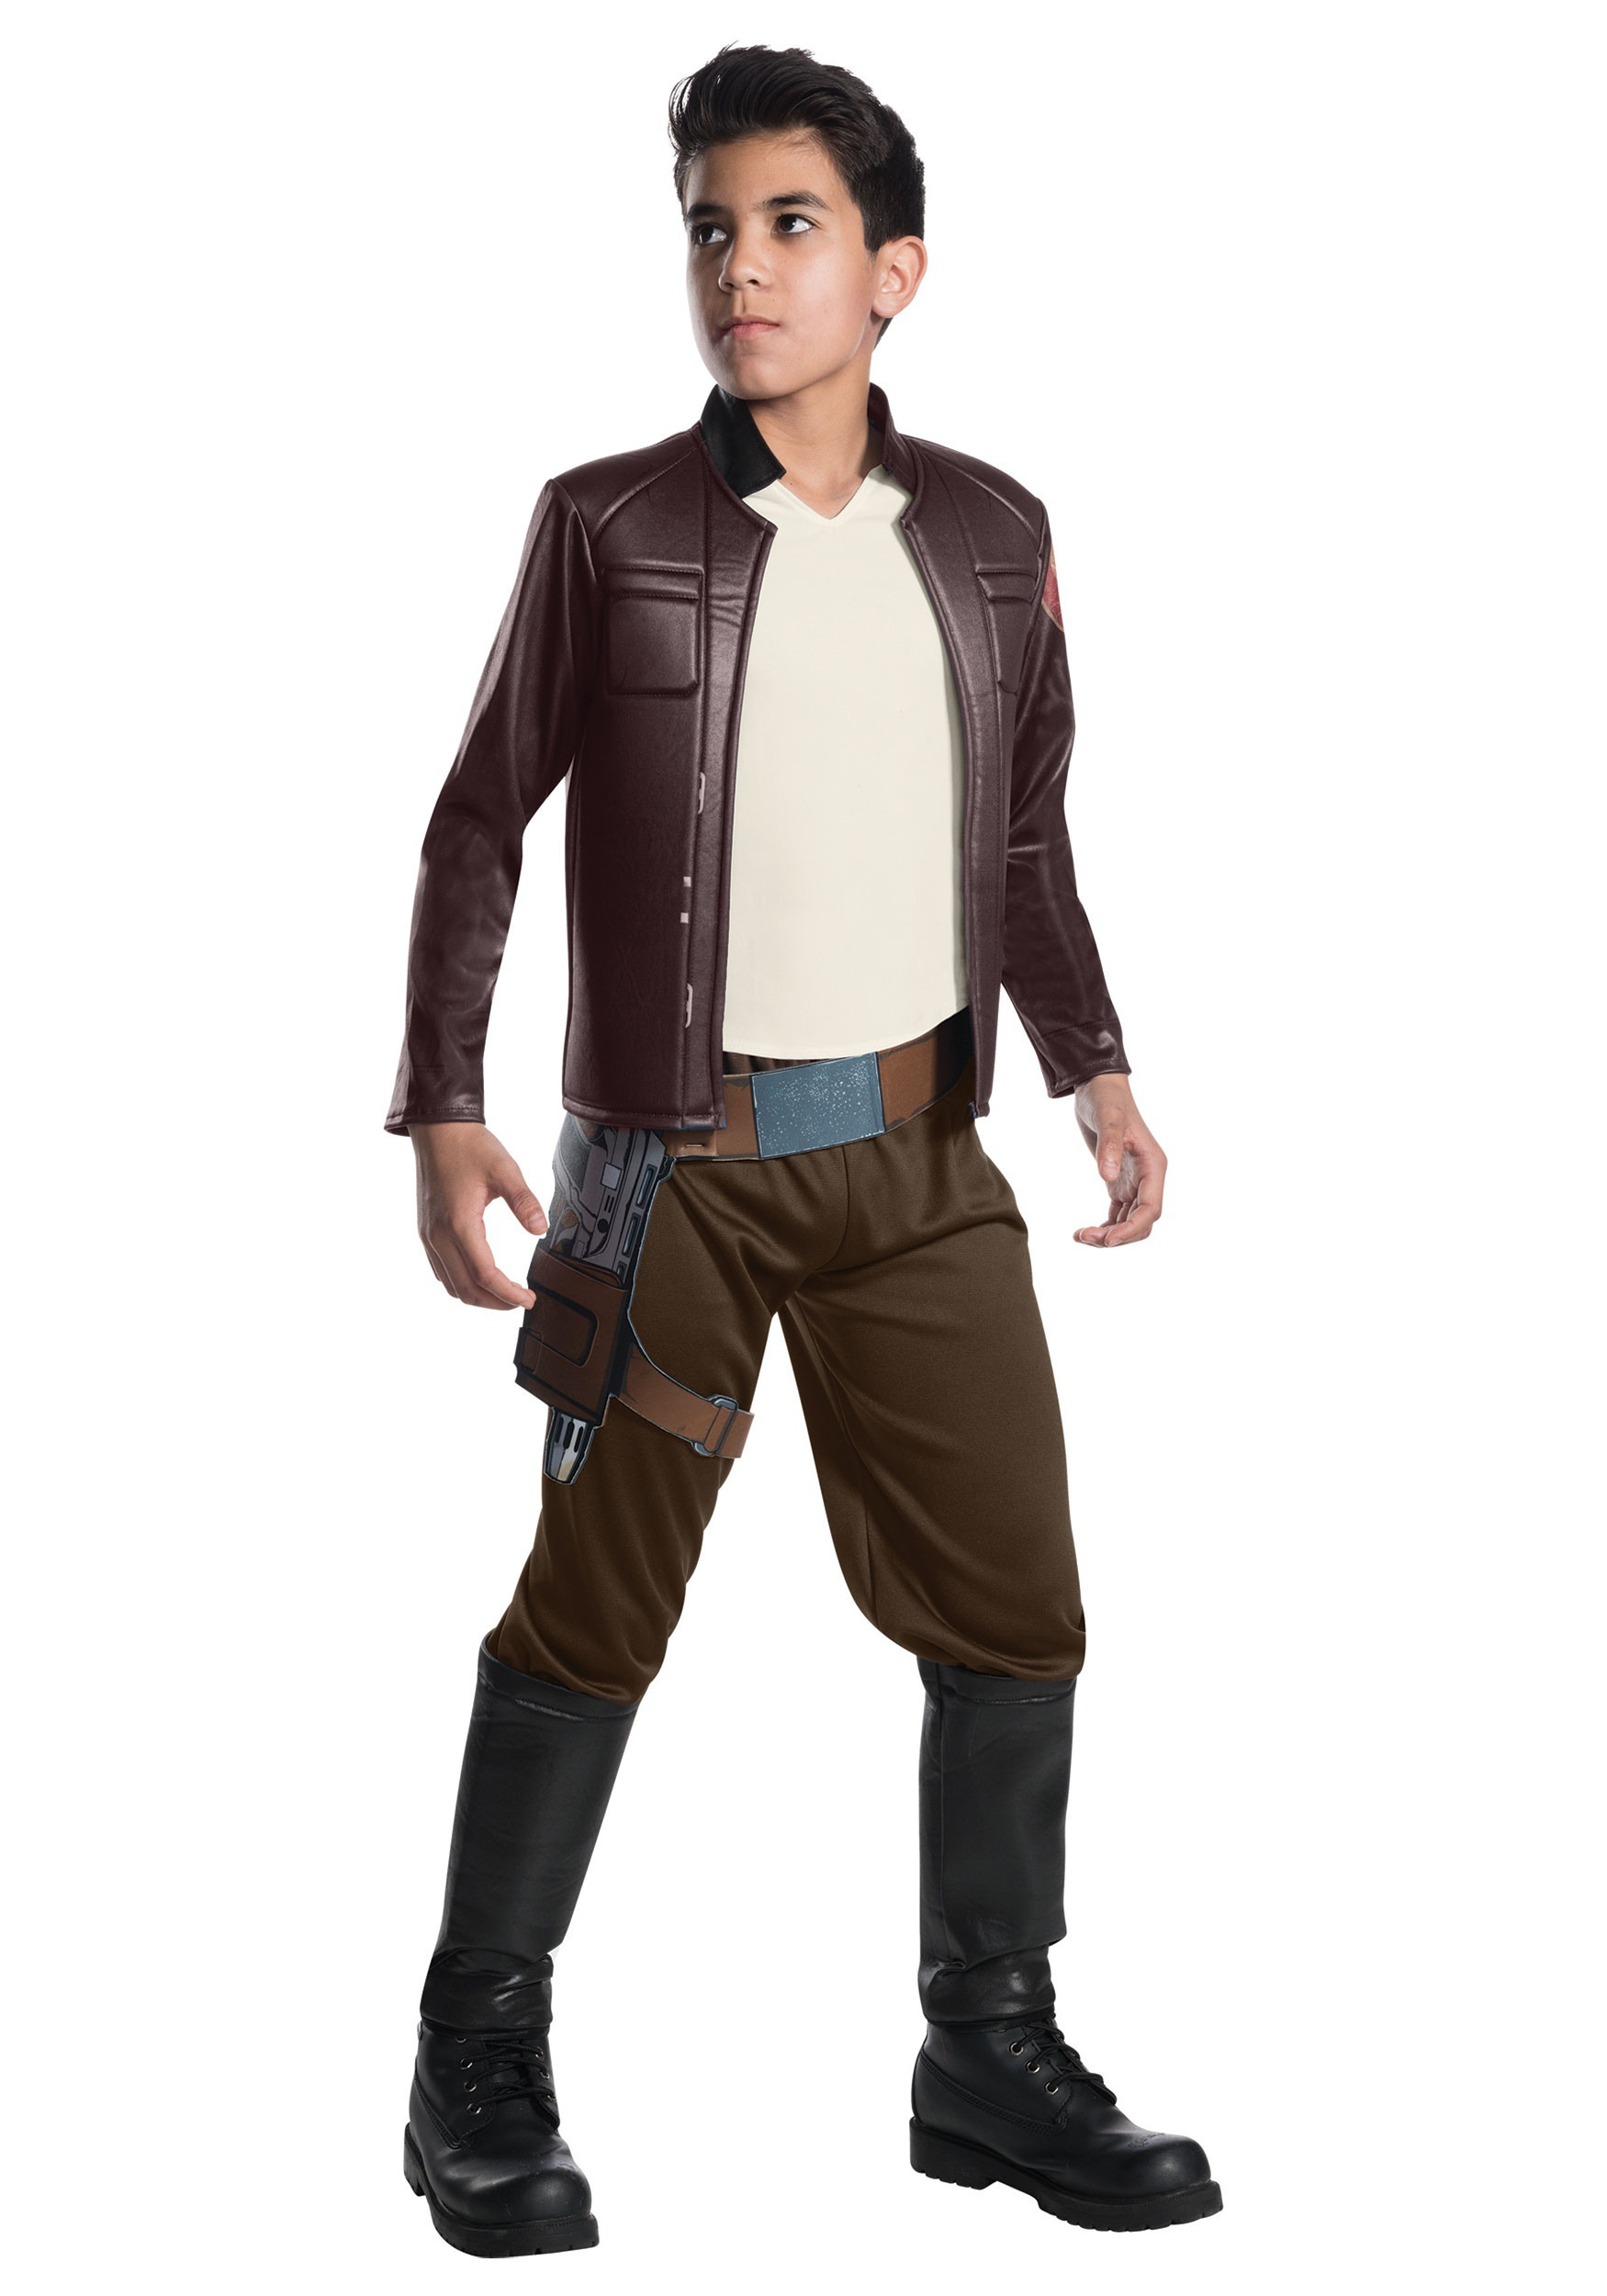 Star Wars The Last Jedi Deluxe Poe Dameron Costume for Kids